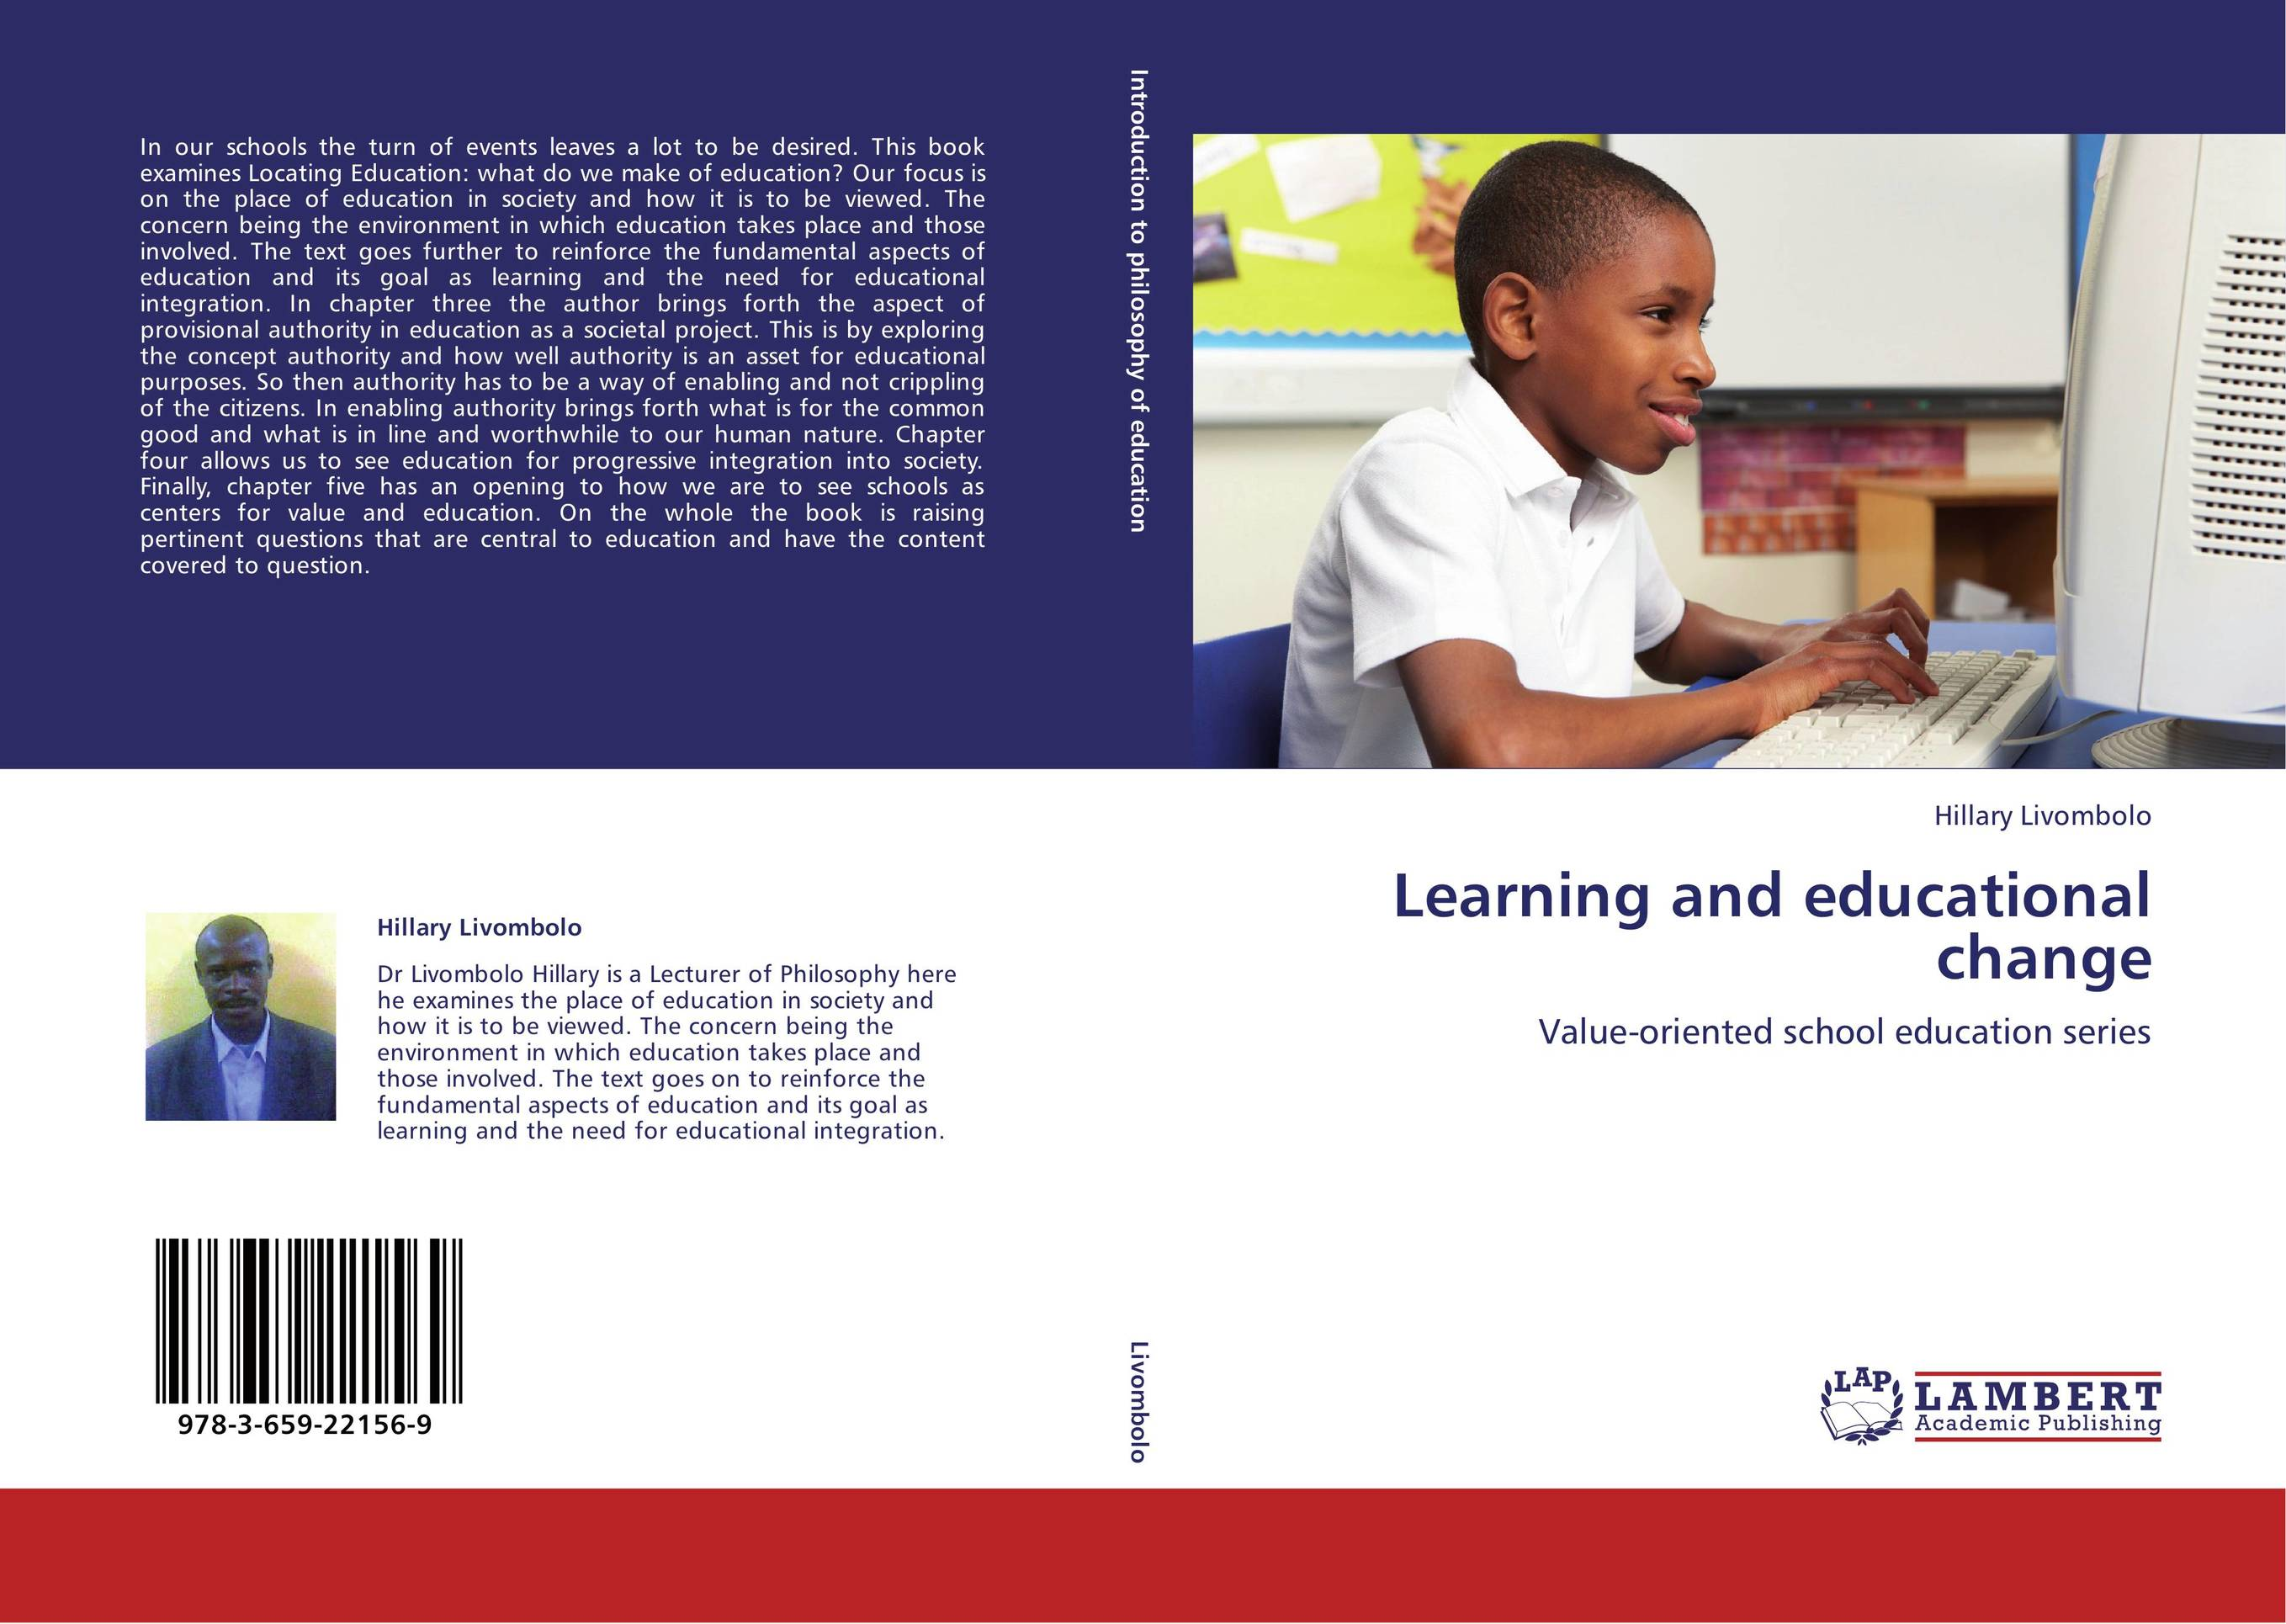 teaching philosophy as education and evaluation of The teacher's evaluation role undermines students' interest in study as a result, the students begin to take on more of a passive role in their education as they are forced to meet and learn such standards and information.